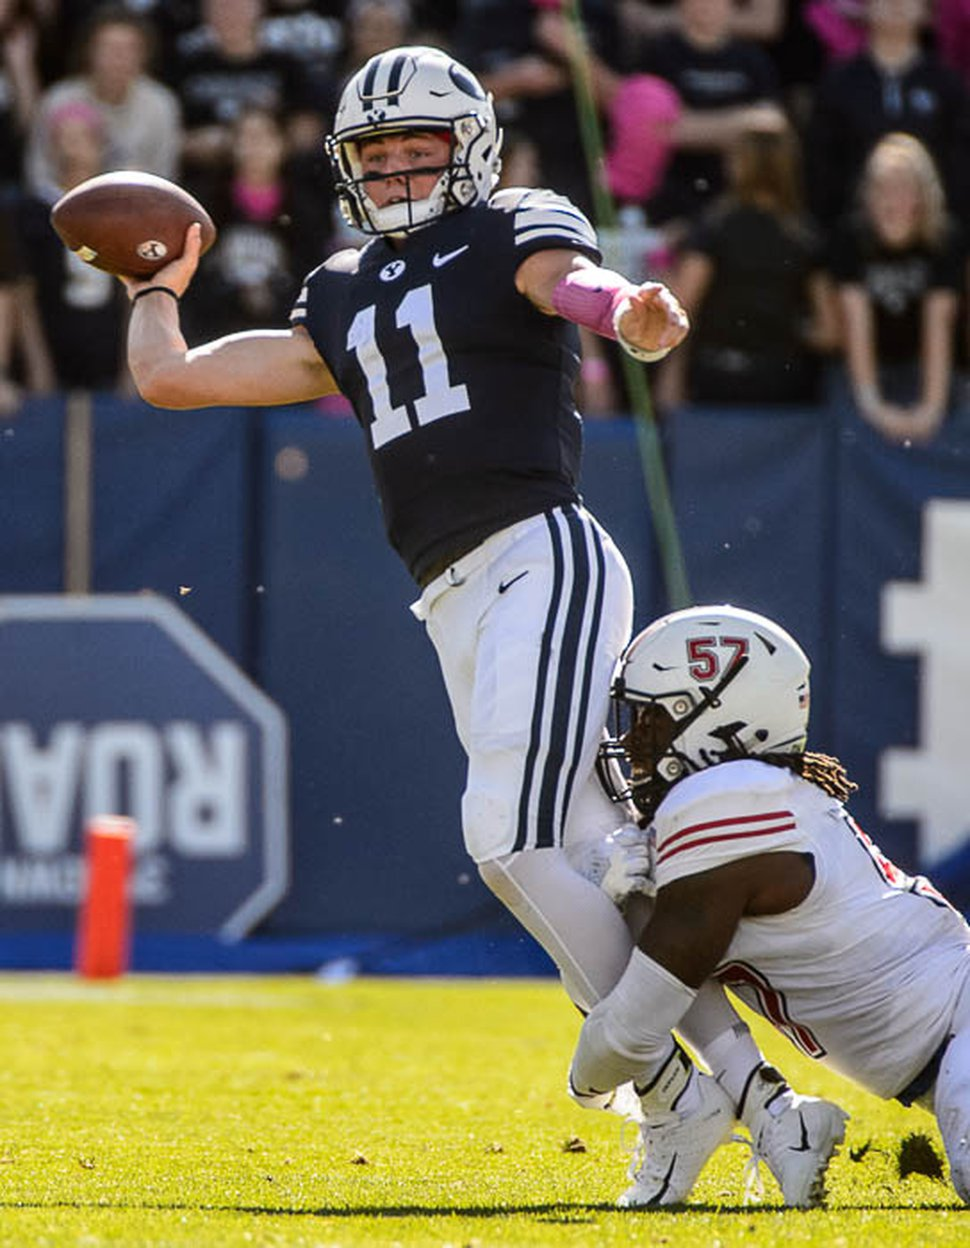 (Trent Nelson | The Salt Lake Tribune) Brigham Young Cougars quarterback Zach Wilson (11) throws the ball away as he's brought down by Northern Illinois Huskies linebacker Kyle Pugh (57) as BYU hosts Northern Illinois, NCAA football in Provo, Saturday Oct. 27, 2018.